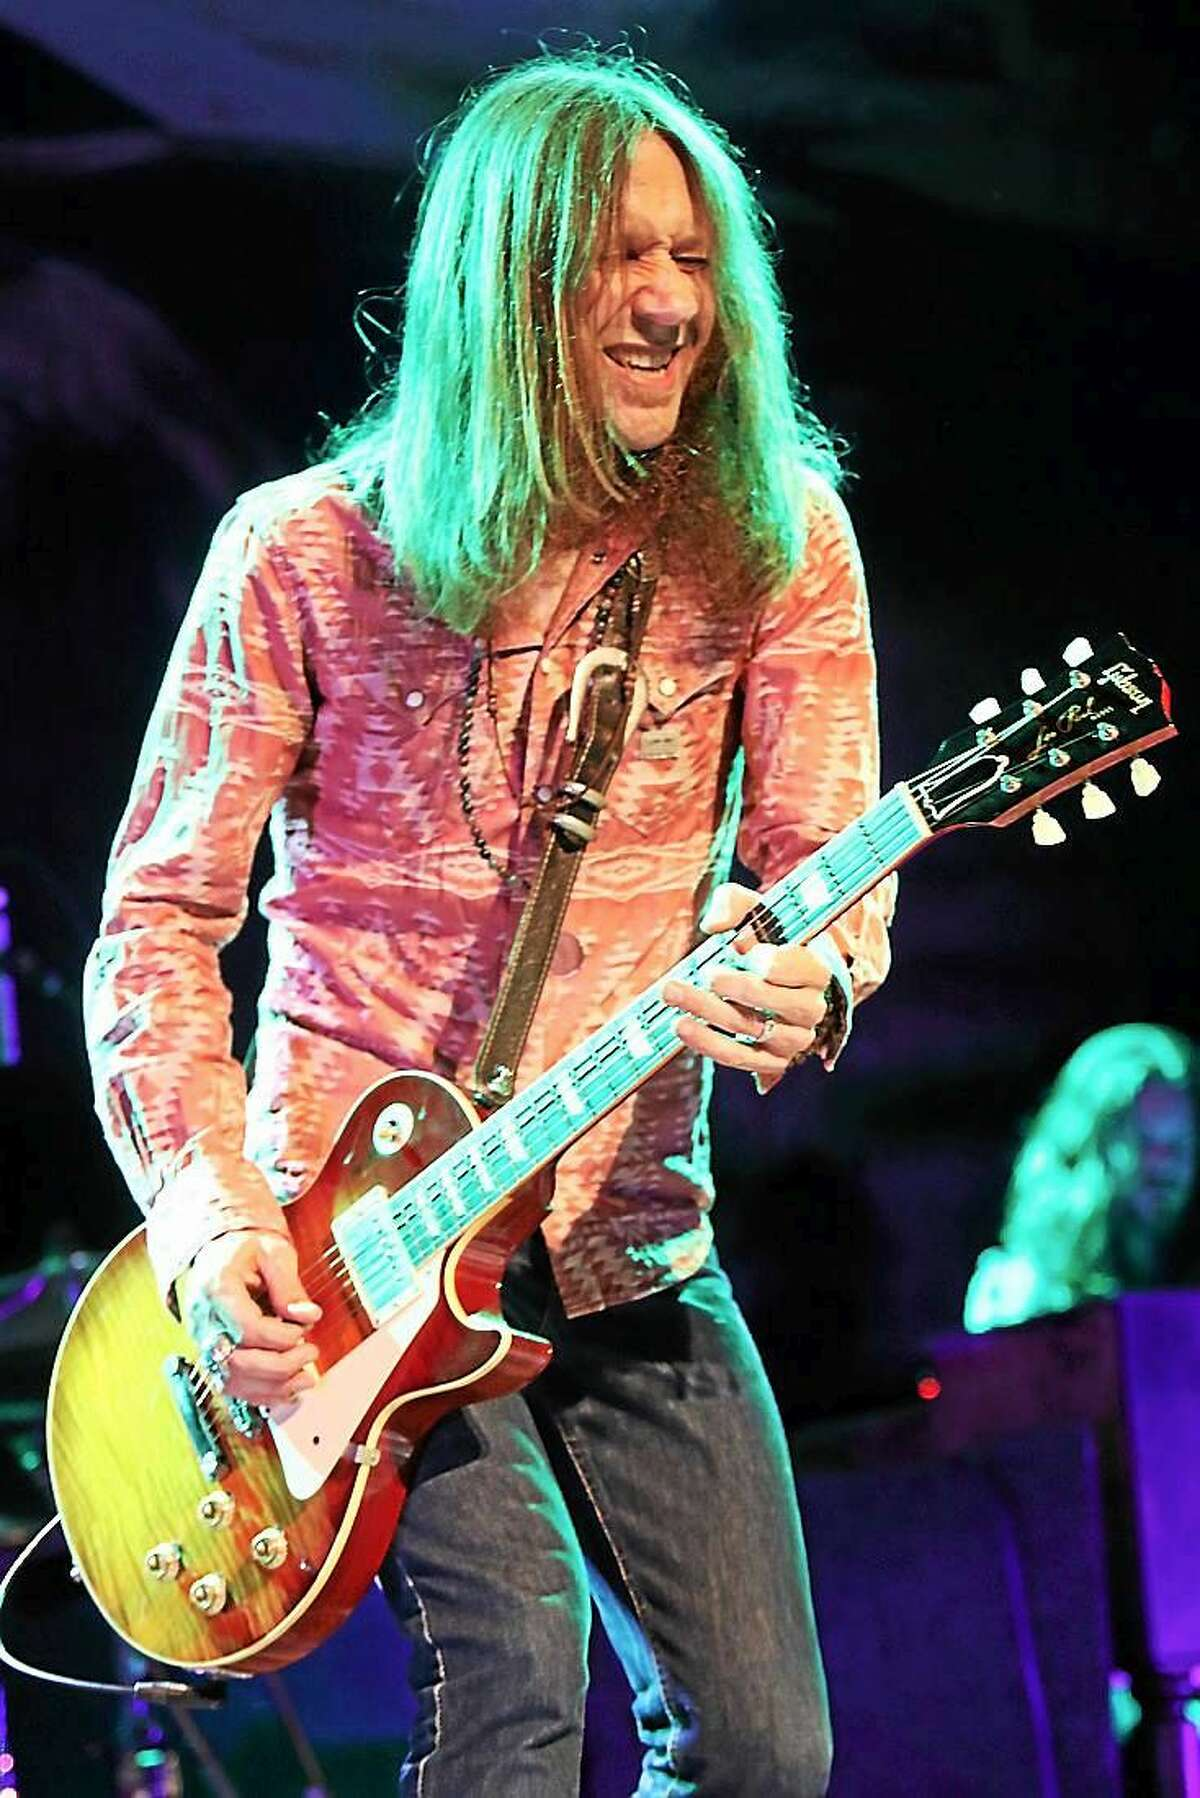 Photo by John Atashian Blackberry Smoke singer and guitarist Charlie Starr is shown performing on stage at the College Street Music Hall in New Haven on Friday night June 26. The band from Atlanta, Georgia are currently on a US tour in support of their fourth studio CD, ìHolding All The Roses.î To learn more about this rising Southern rock band, visit www.blackberrysmoke.com